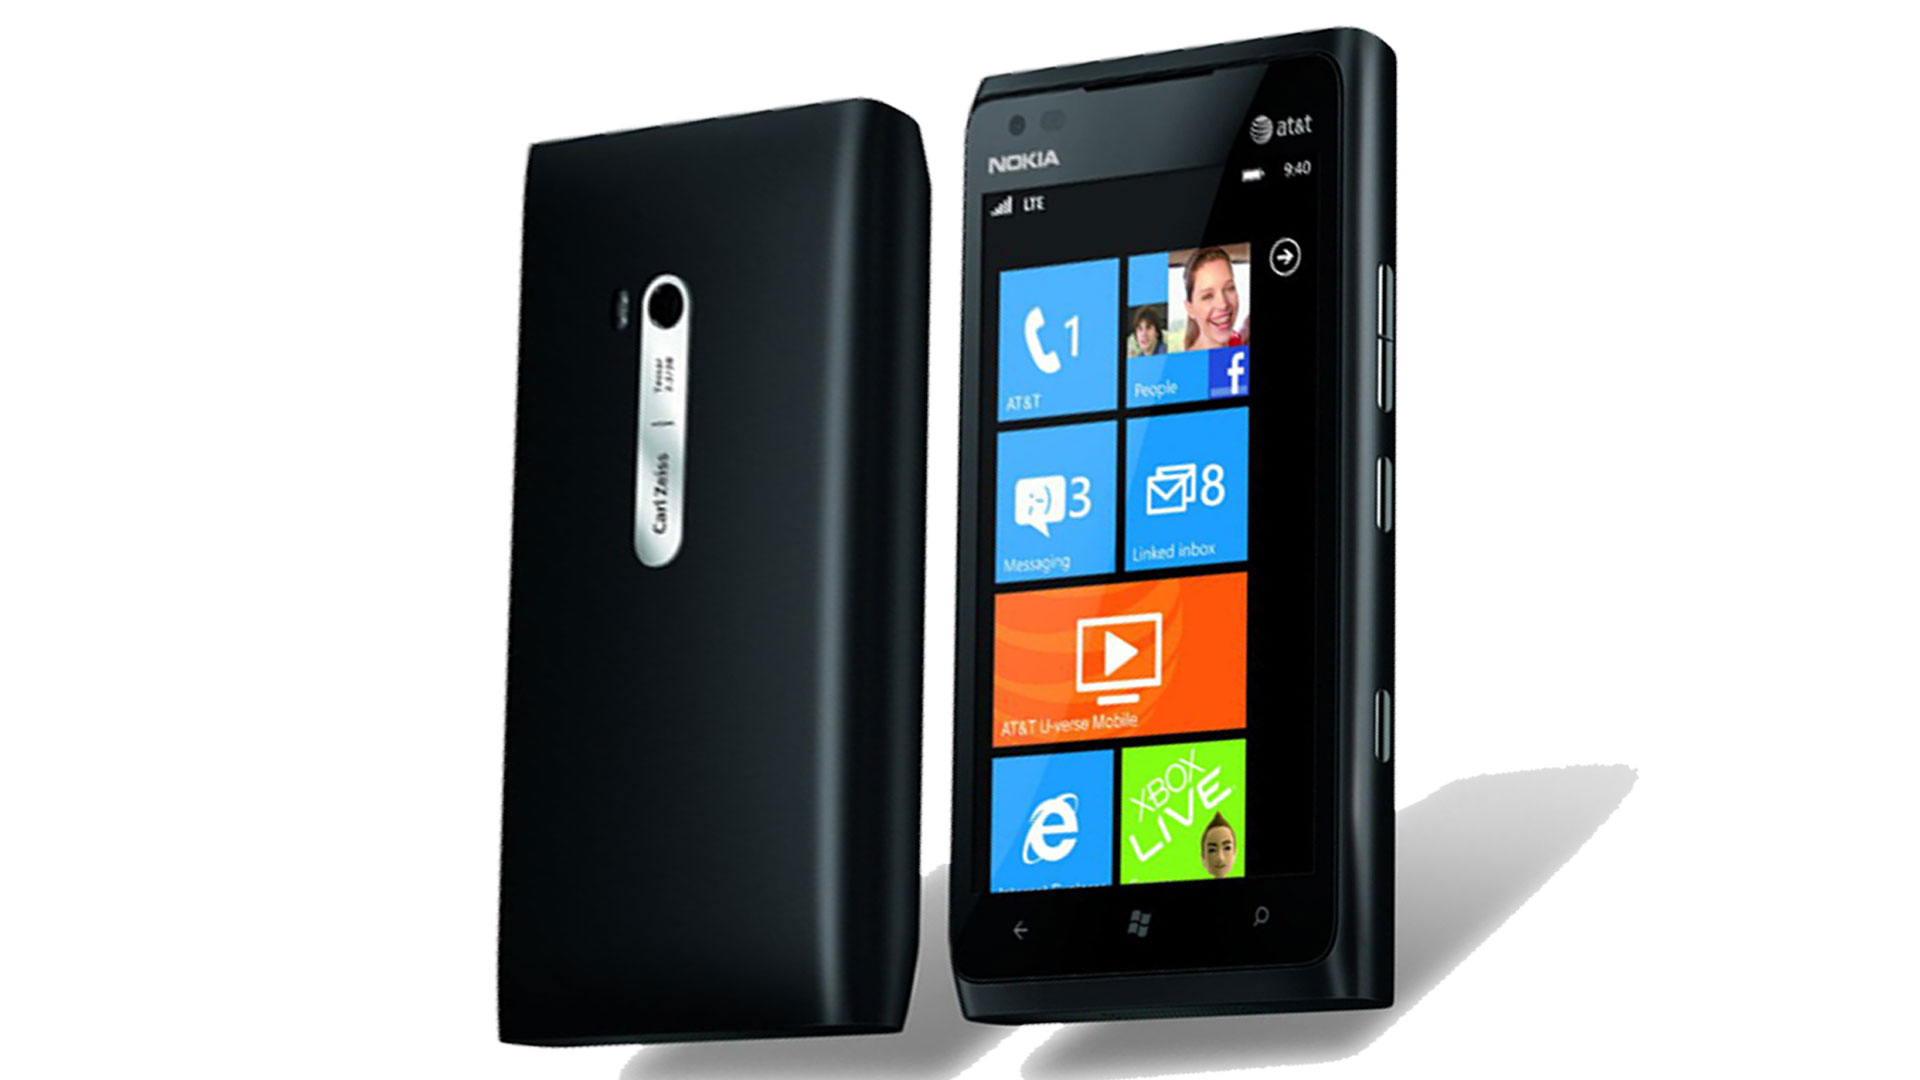 Nokia lumia 900 16gb 4g lte gps pda camera black windows for Window 4g phone